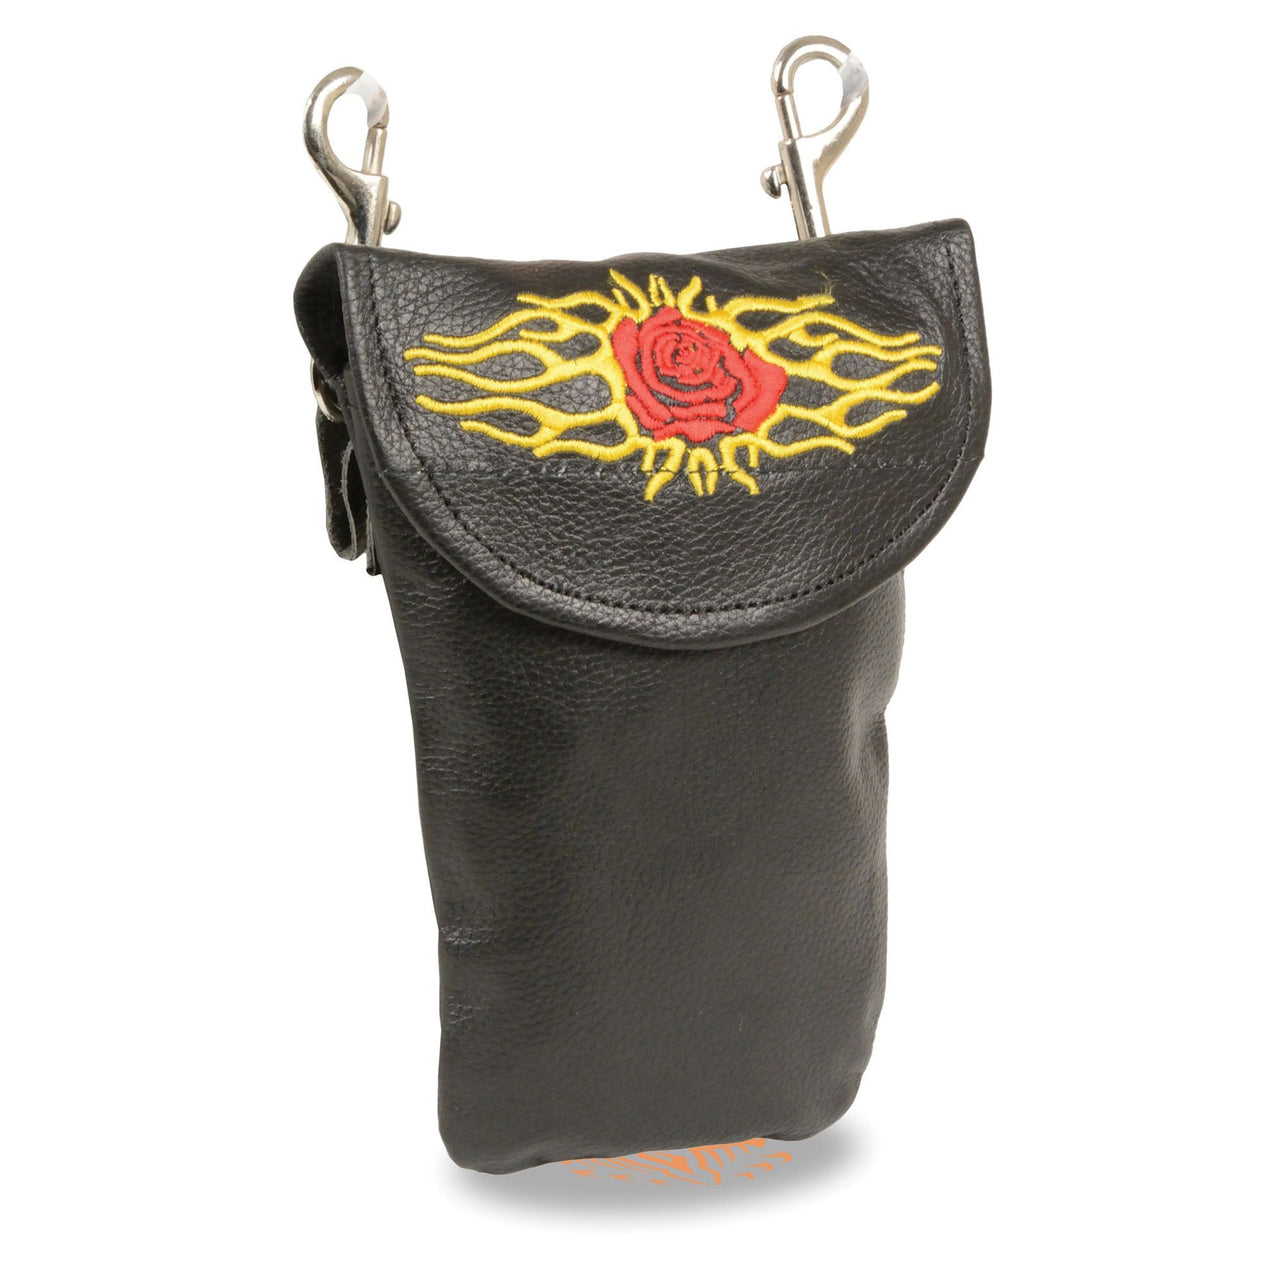 Leather Belt Bag w/ Rose & Flames & Double Clasps (7.5X6) - HighwayLeather